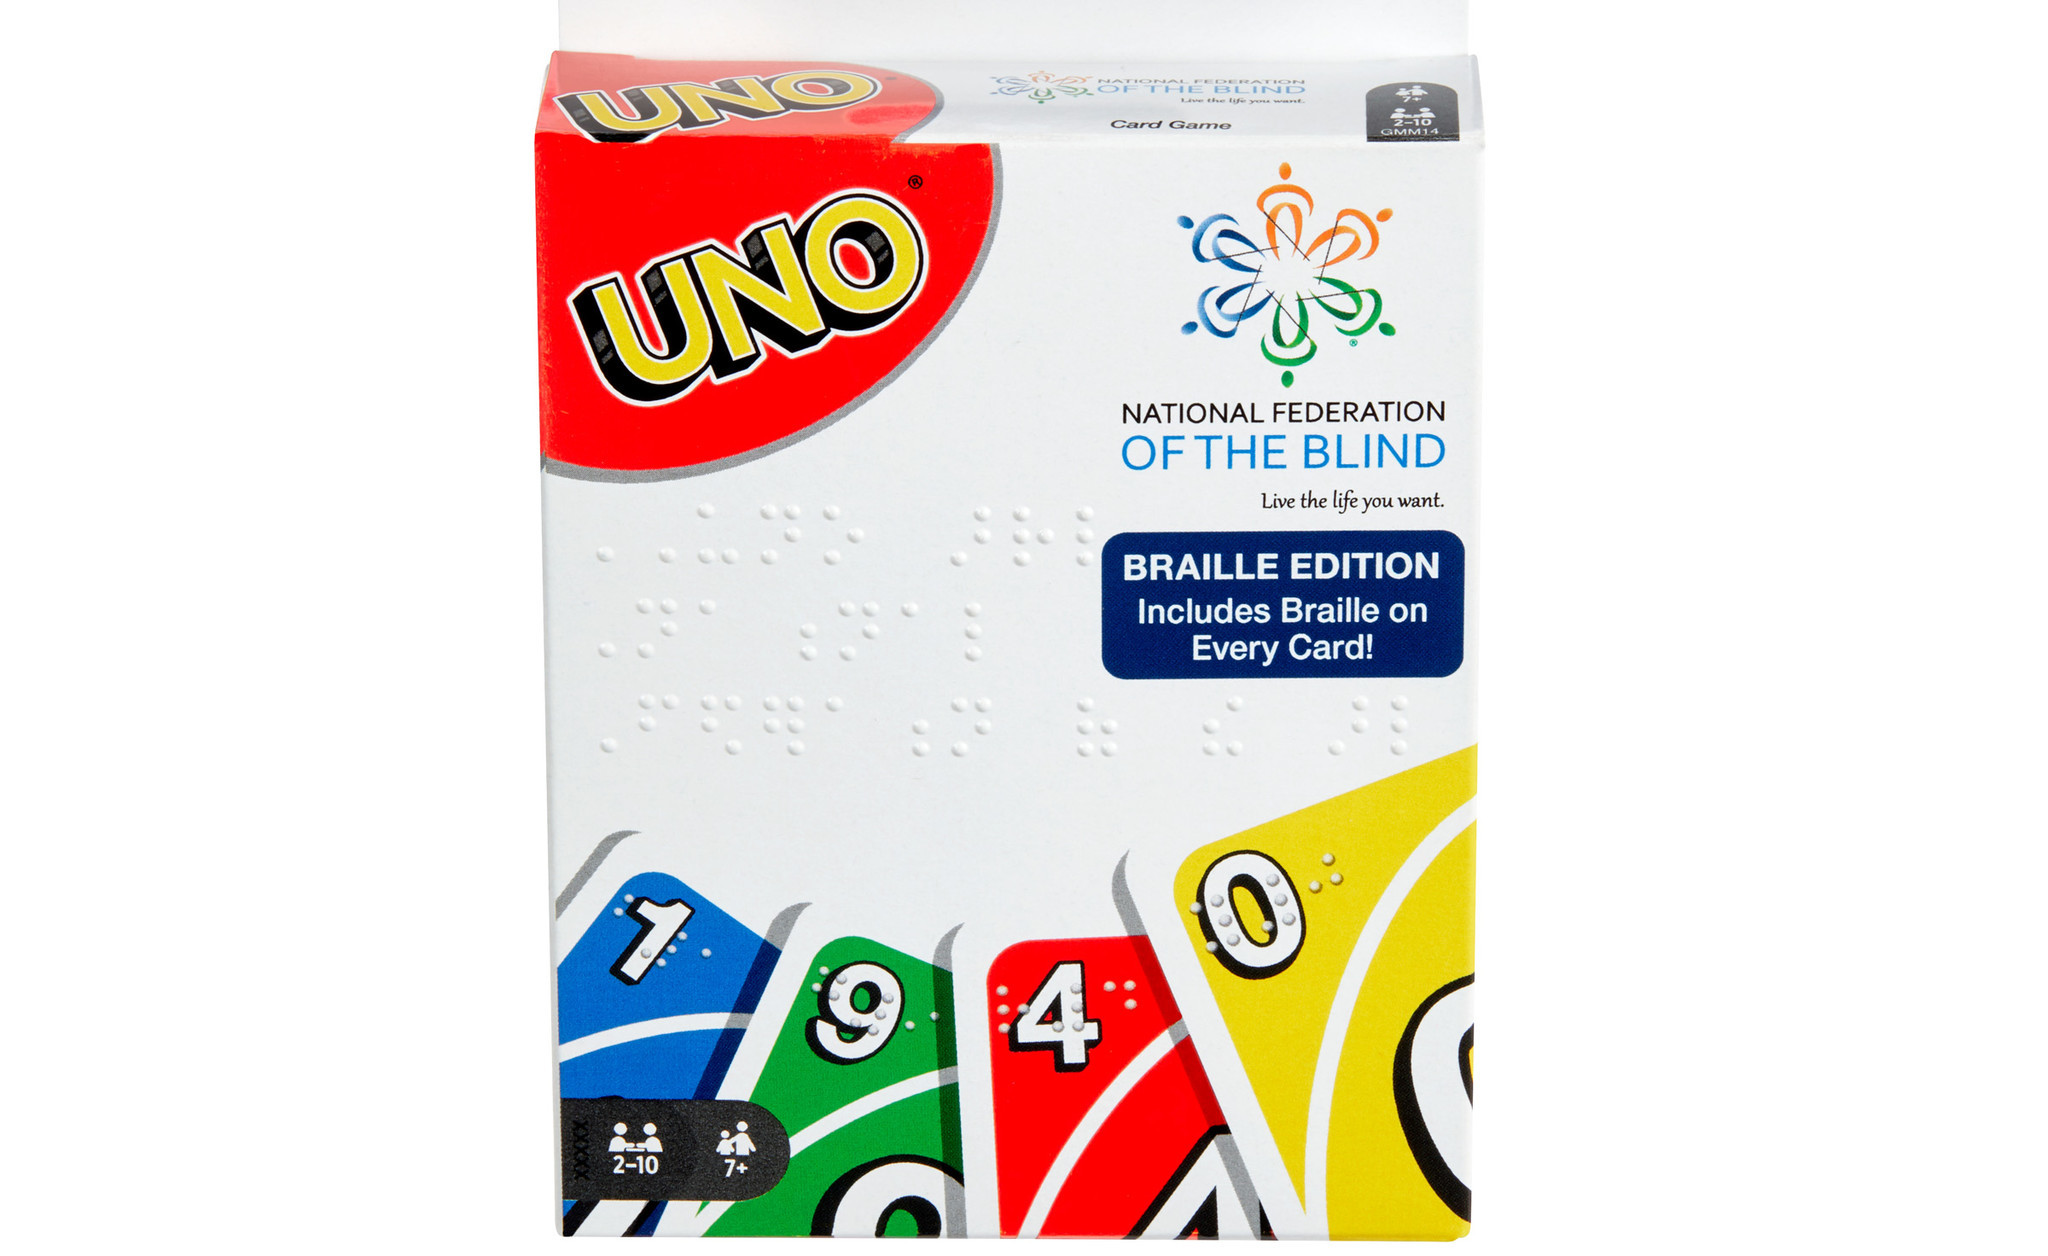 Uno shuffles up its first deck of Braille playing cards